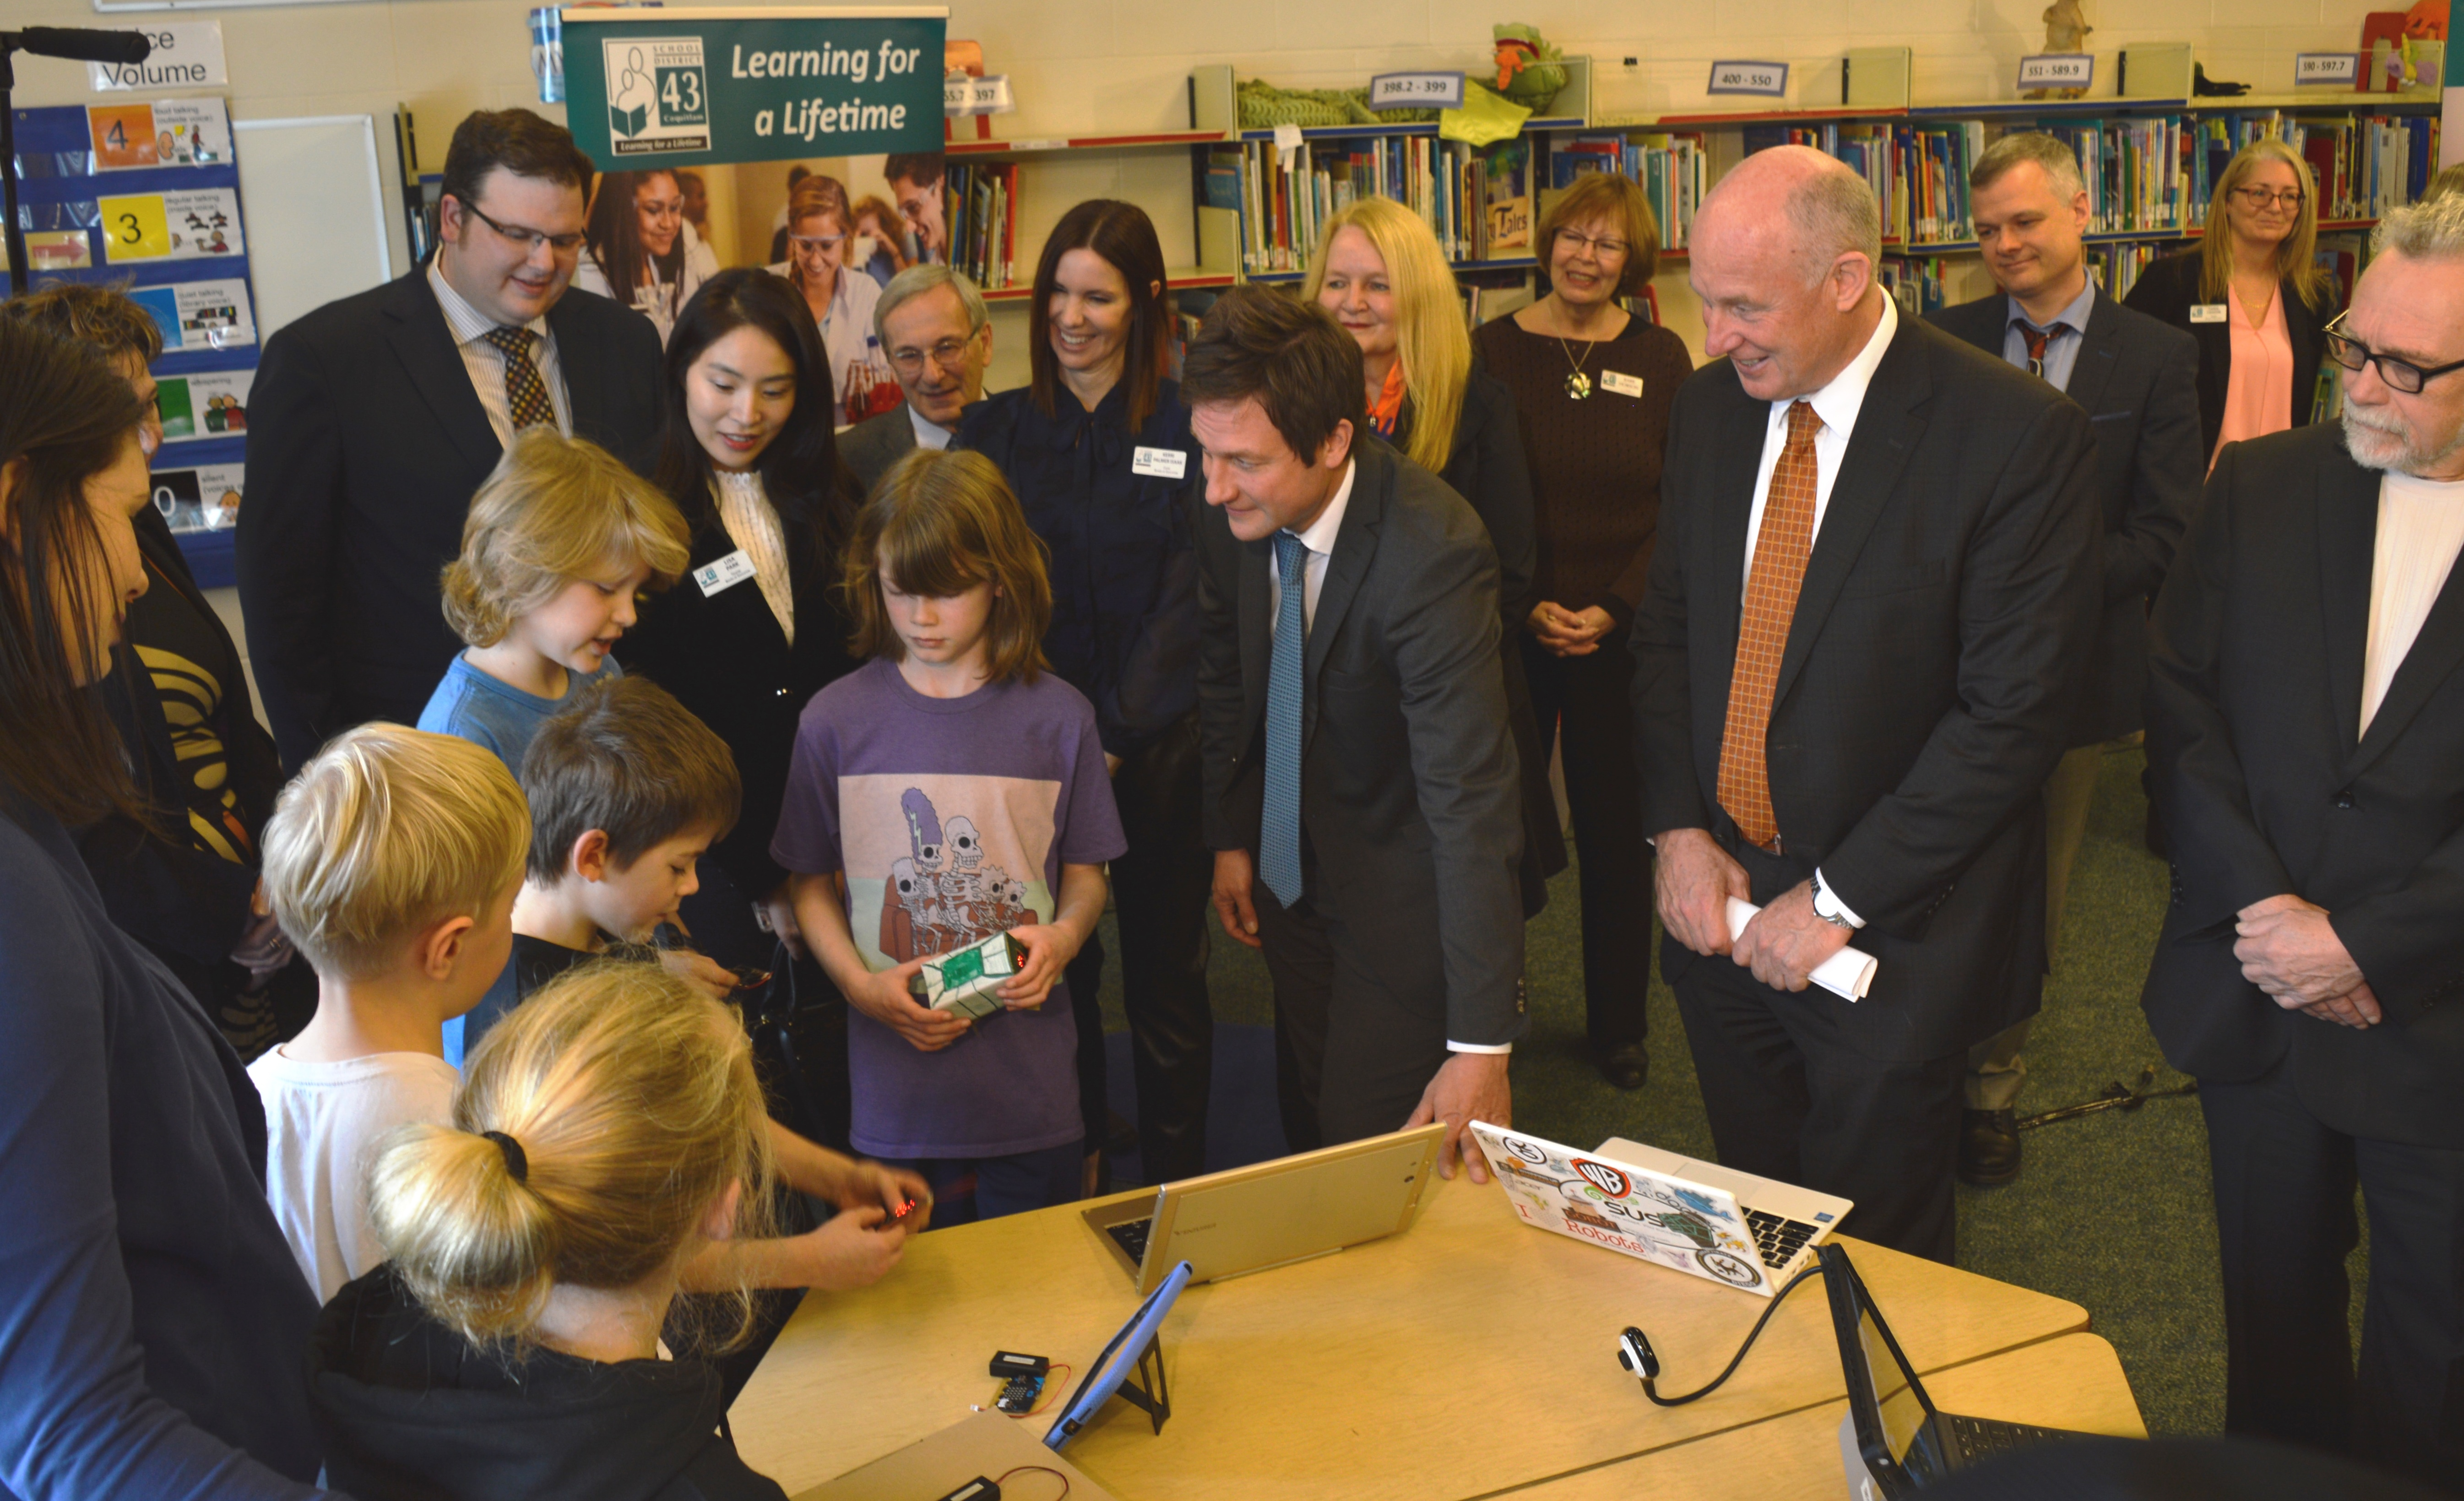 Minister with Irvine student micro bit activity Jan 30, 2018.jpg